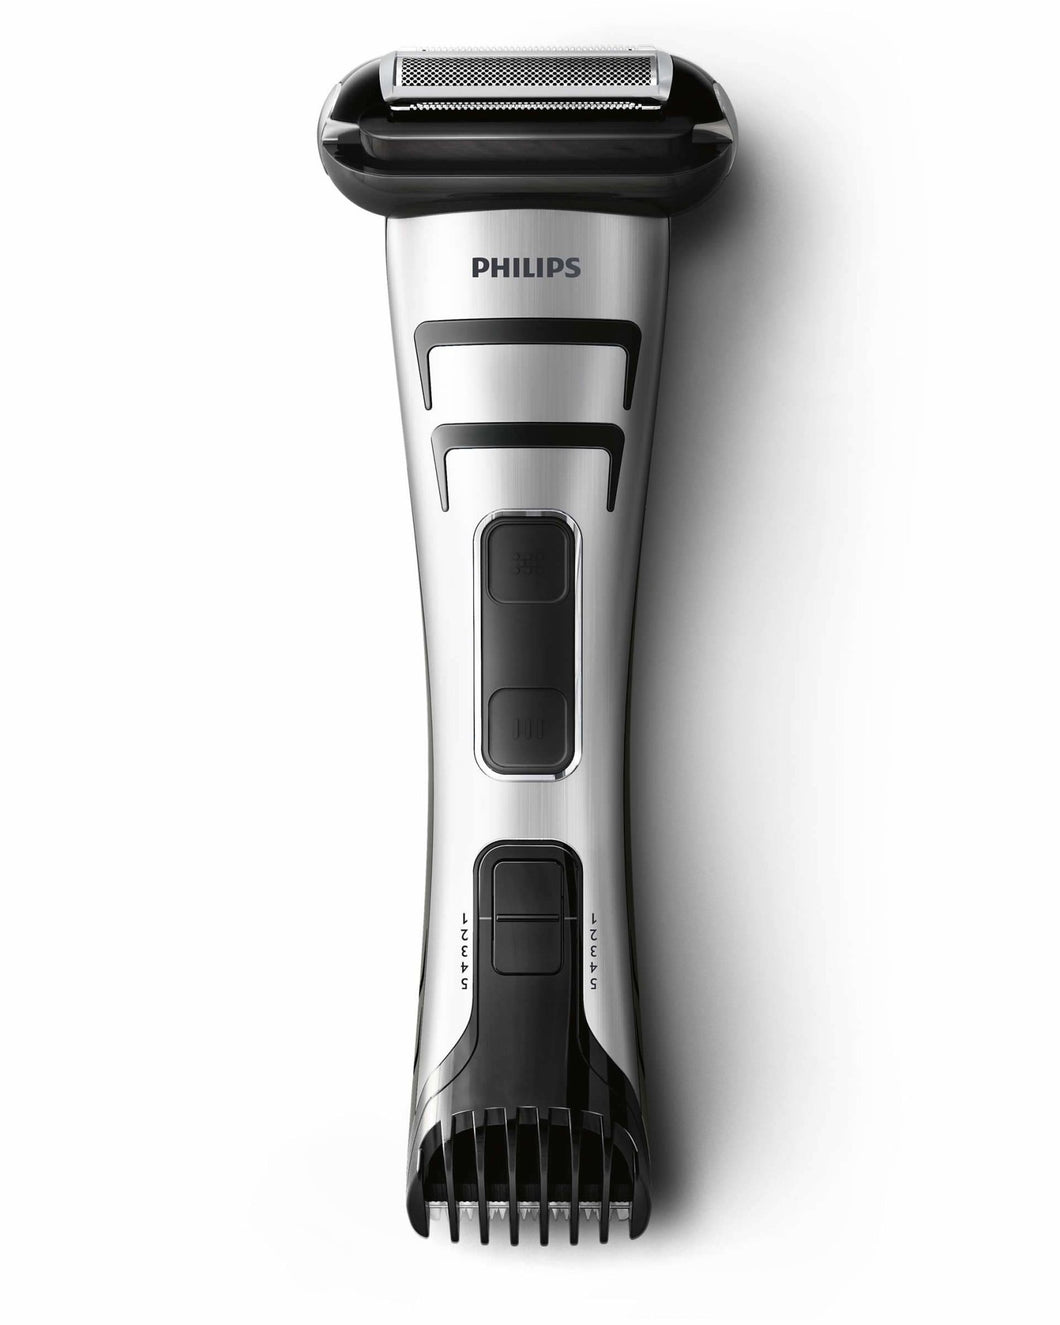 Philips Bodygroom Series 7000 TT2040/32 - Get a Cut NZ